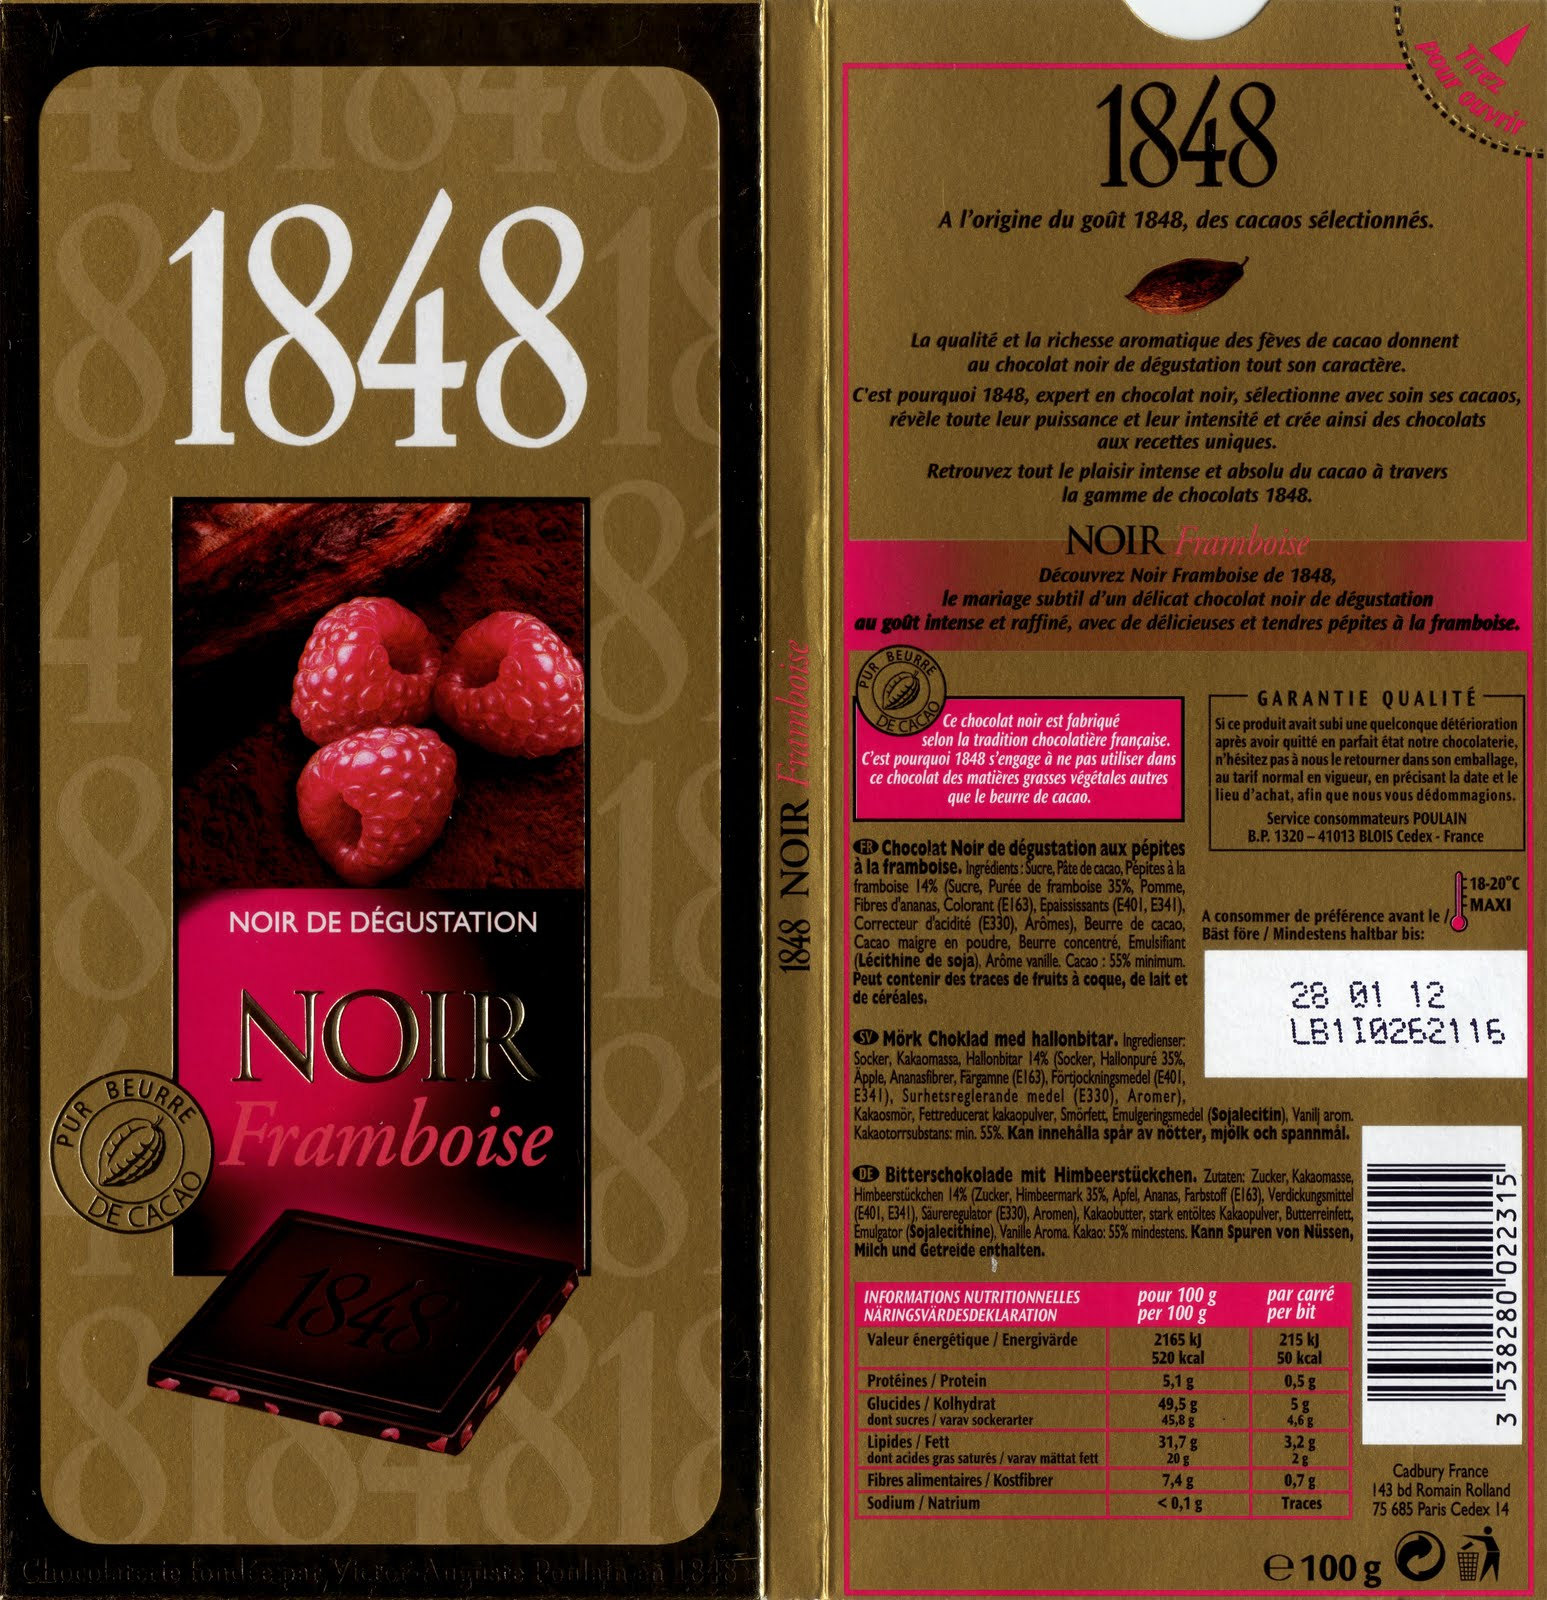 Poulain 1848 noir framboise tablette de choc for 1 tablette de chocolat